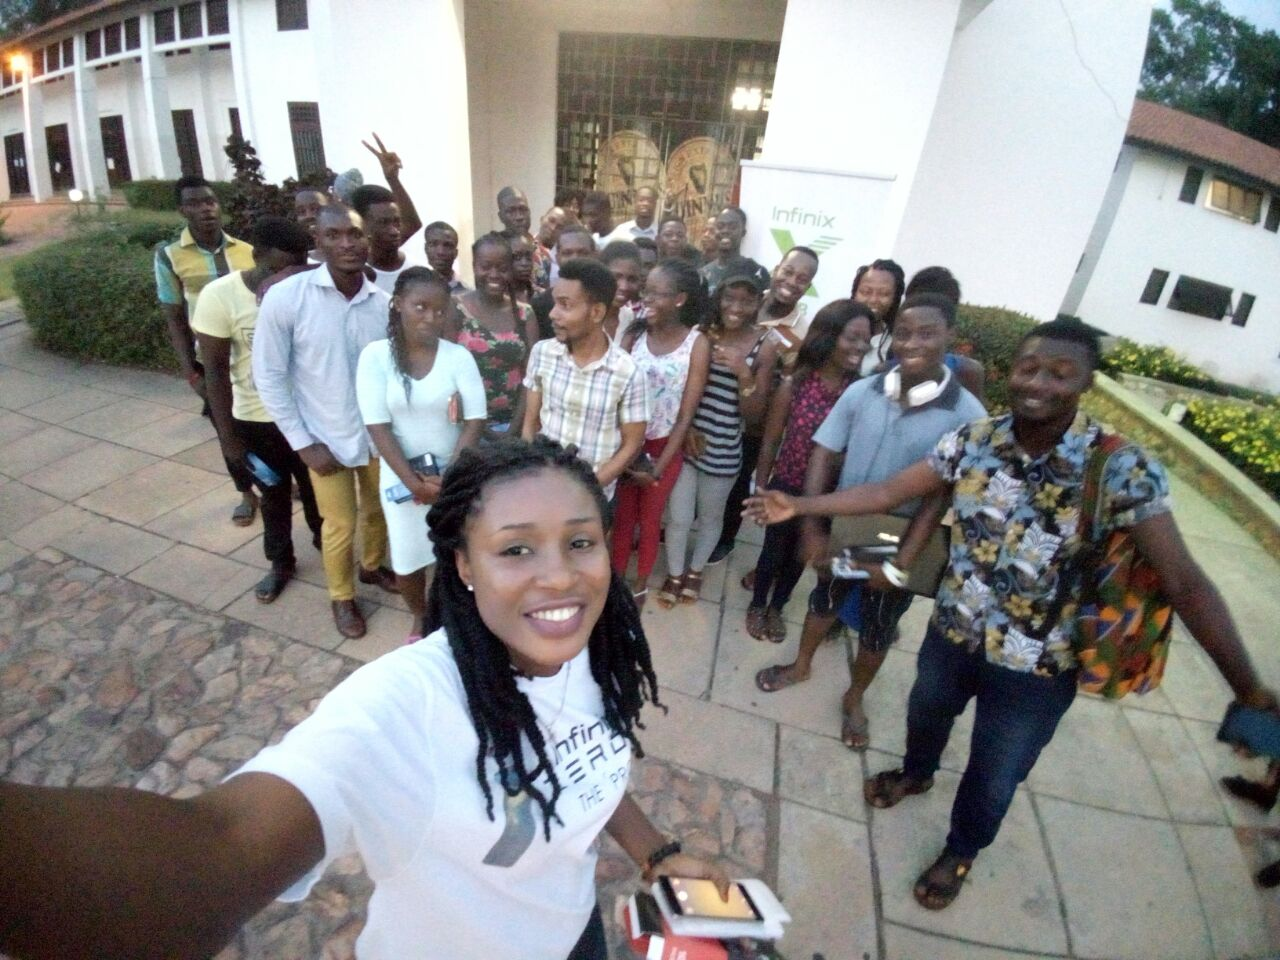 Infinix Ghana Meets Campus fans with 'X Fans'